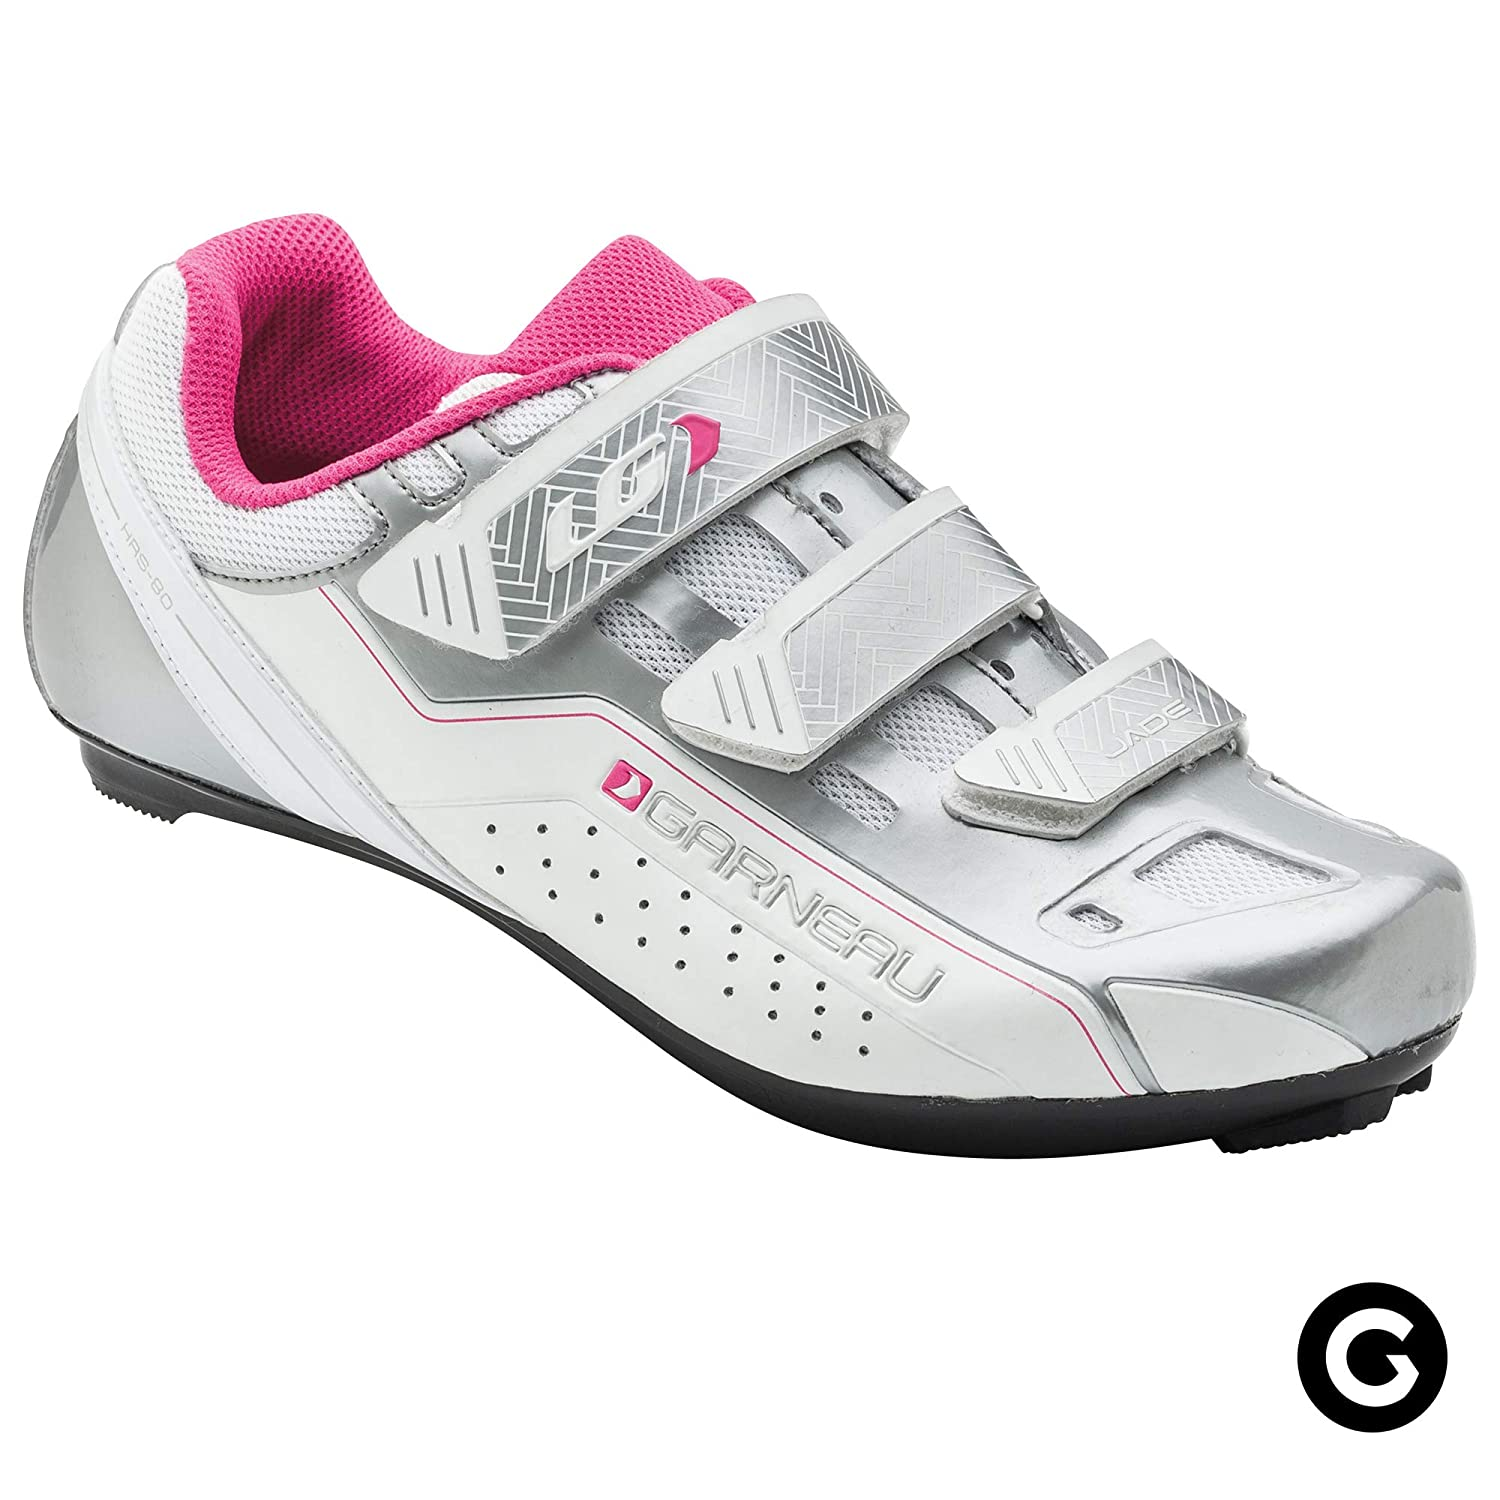 bf35f5951 Amazon.com: Louis Garneau Women's Jade Bike Shoes for Commuting and Indoor  Cycling, Compatible with SPD, Look and All Road Pedals: Sports & Outdoors